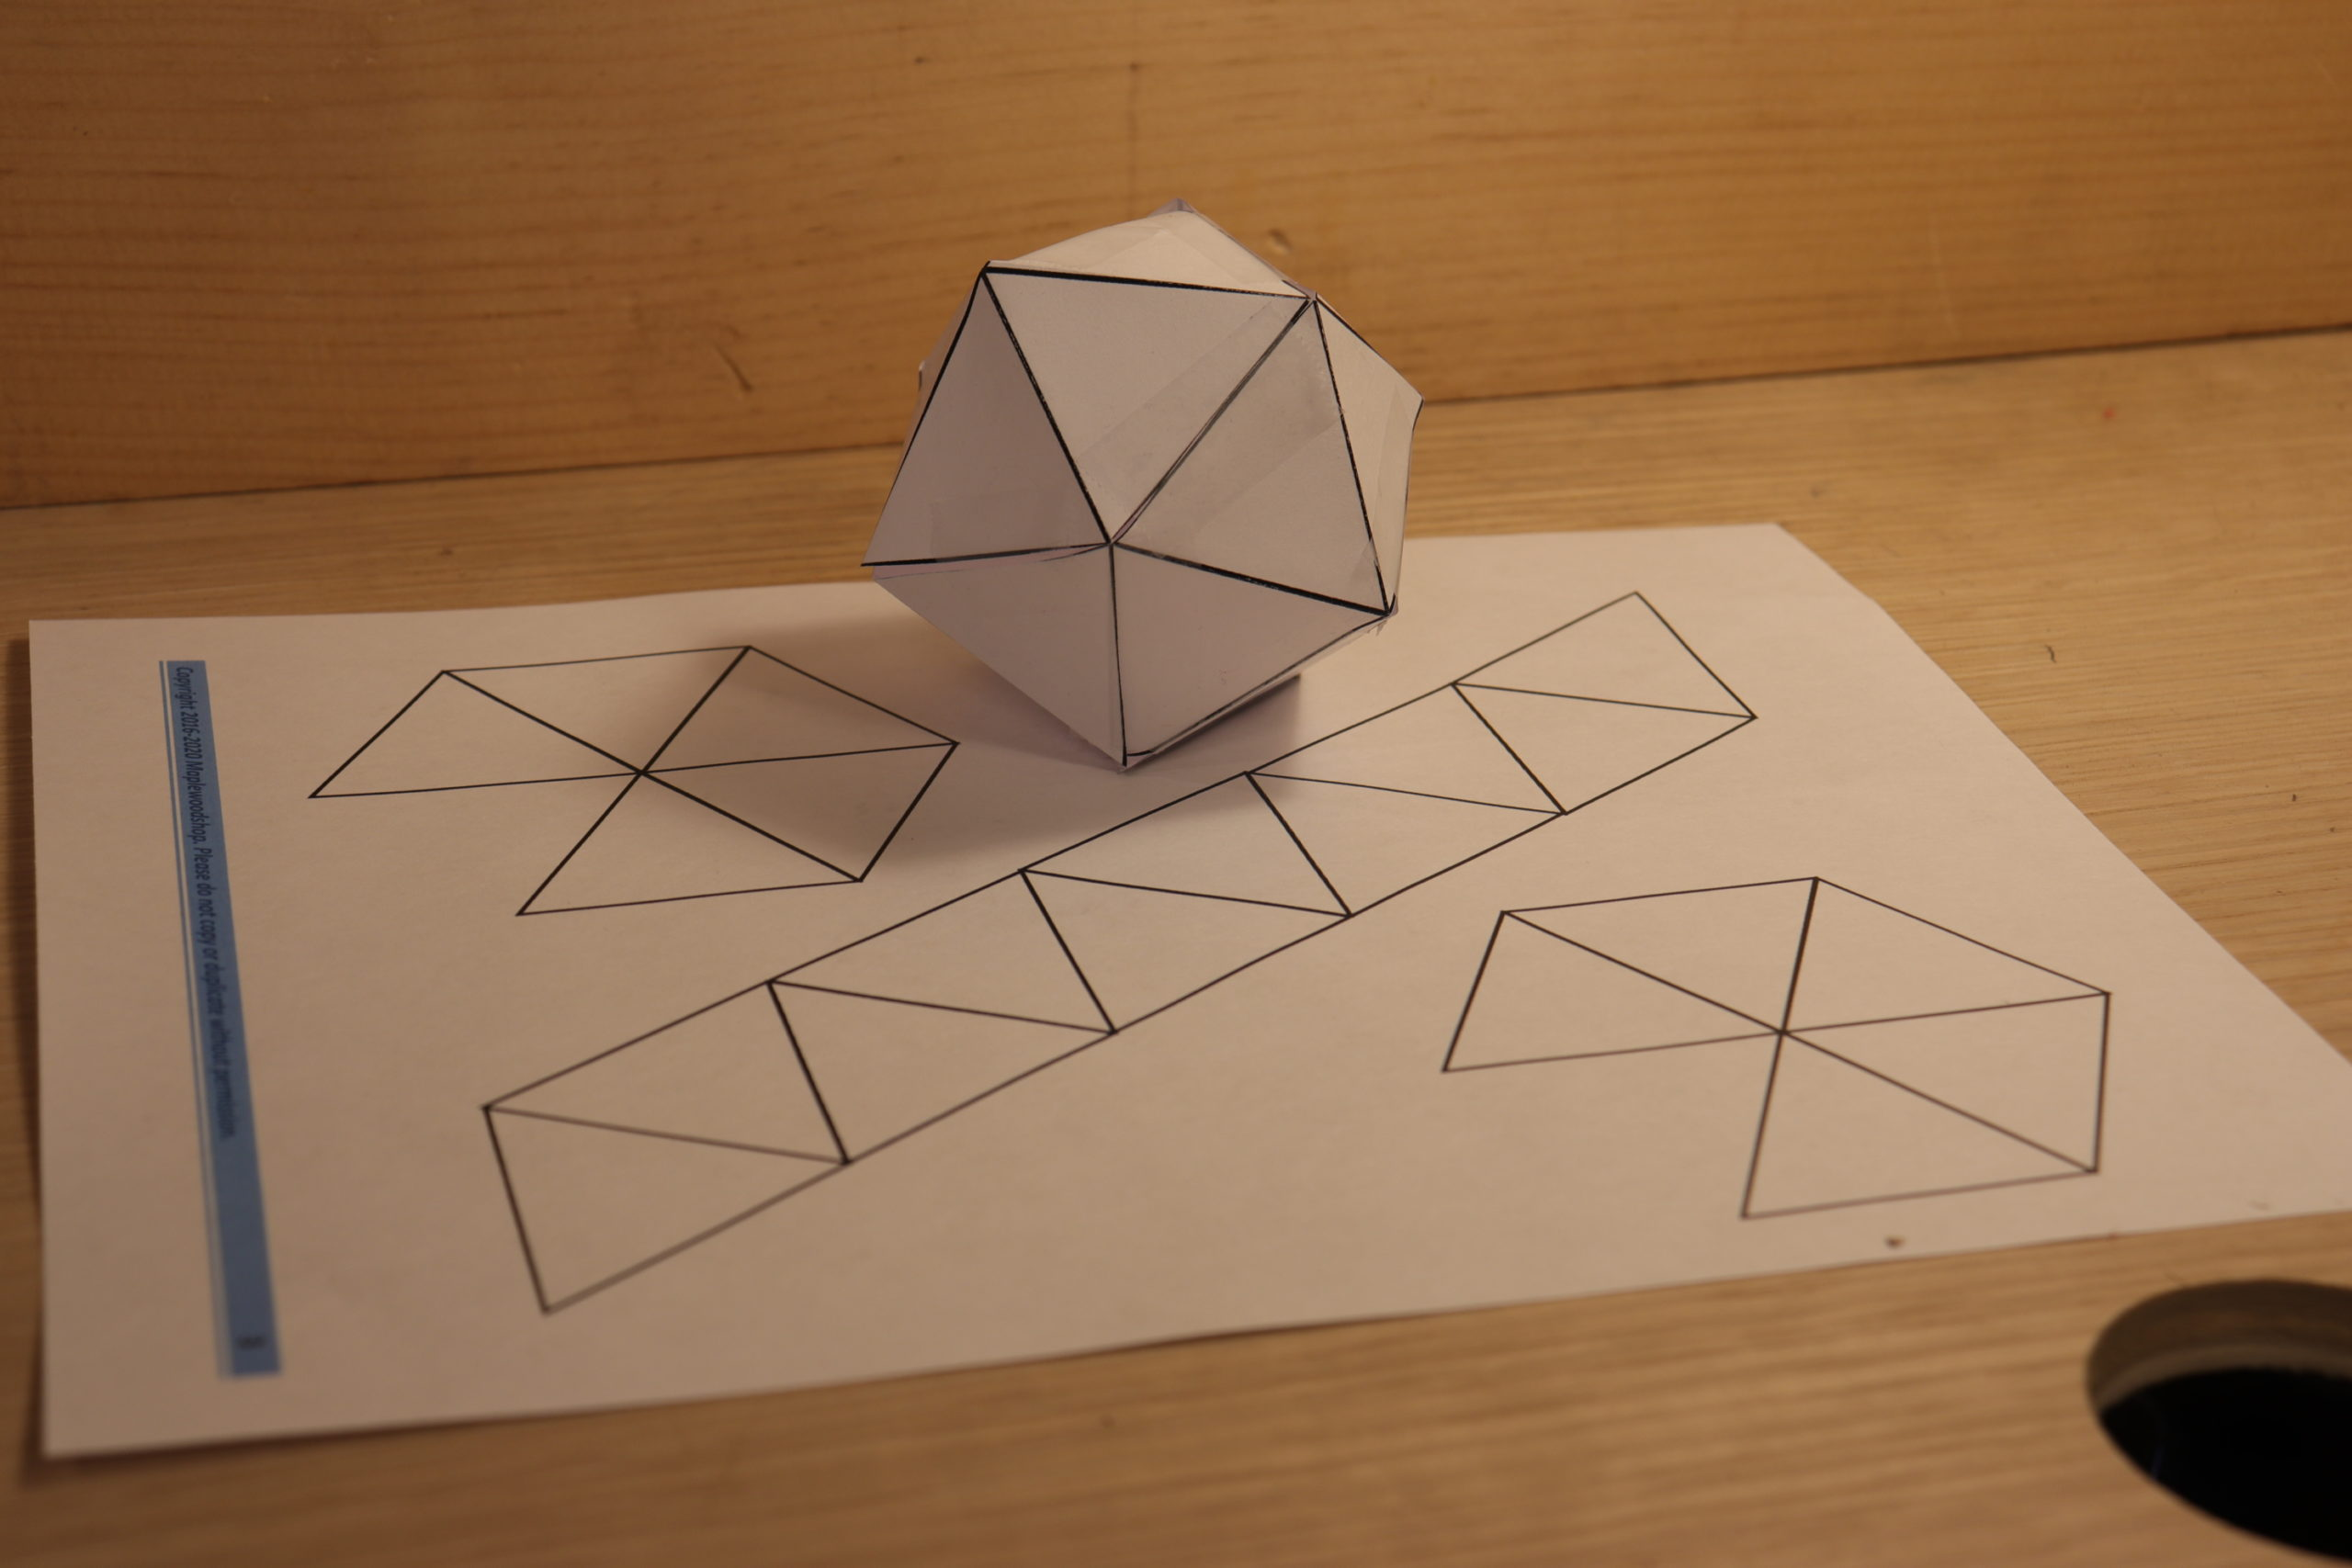 Getting Crafty- Paper Geodesic Dome